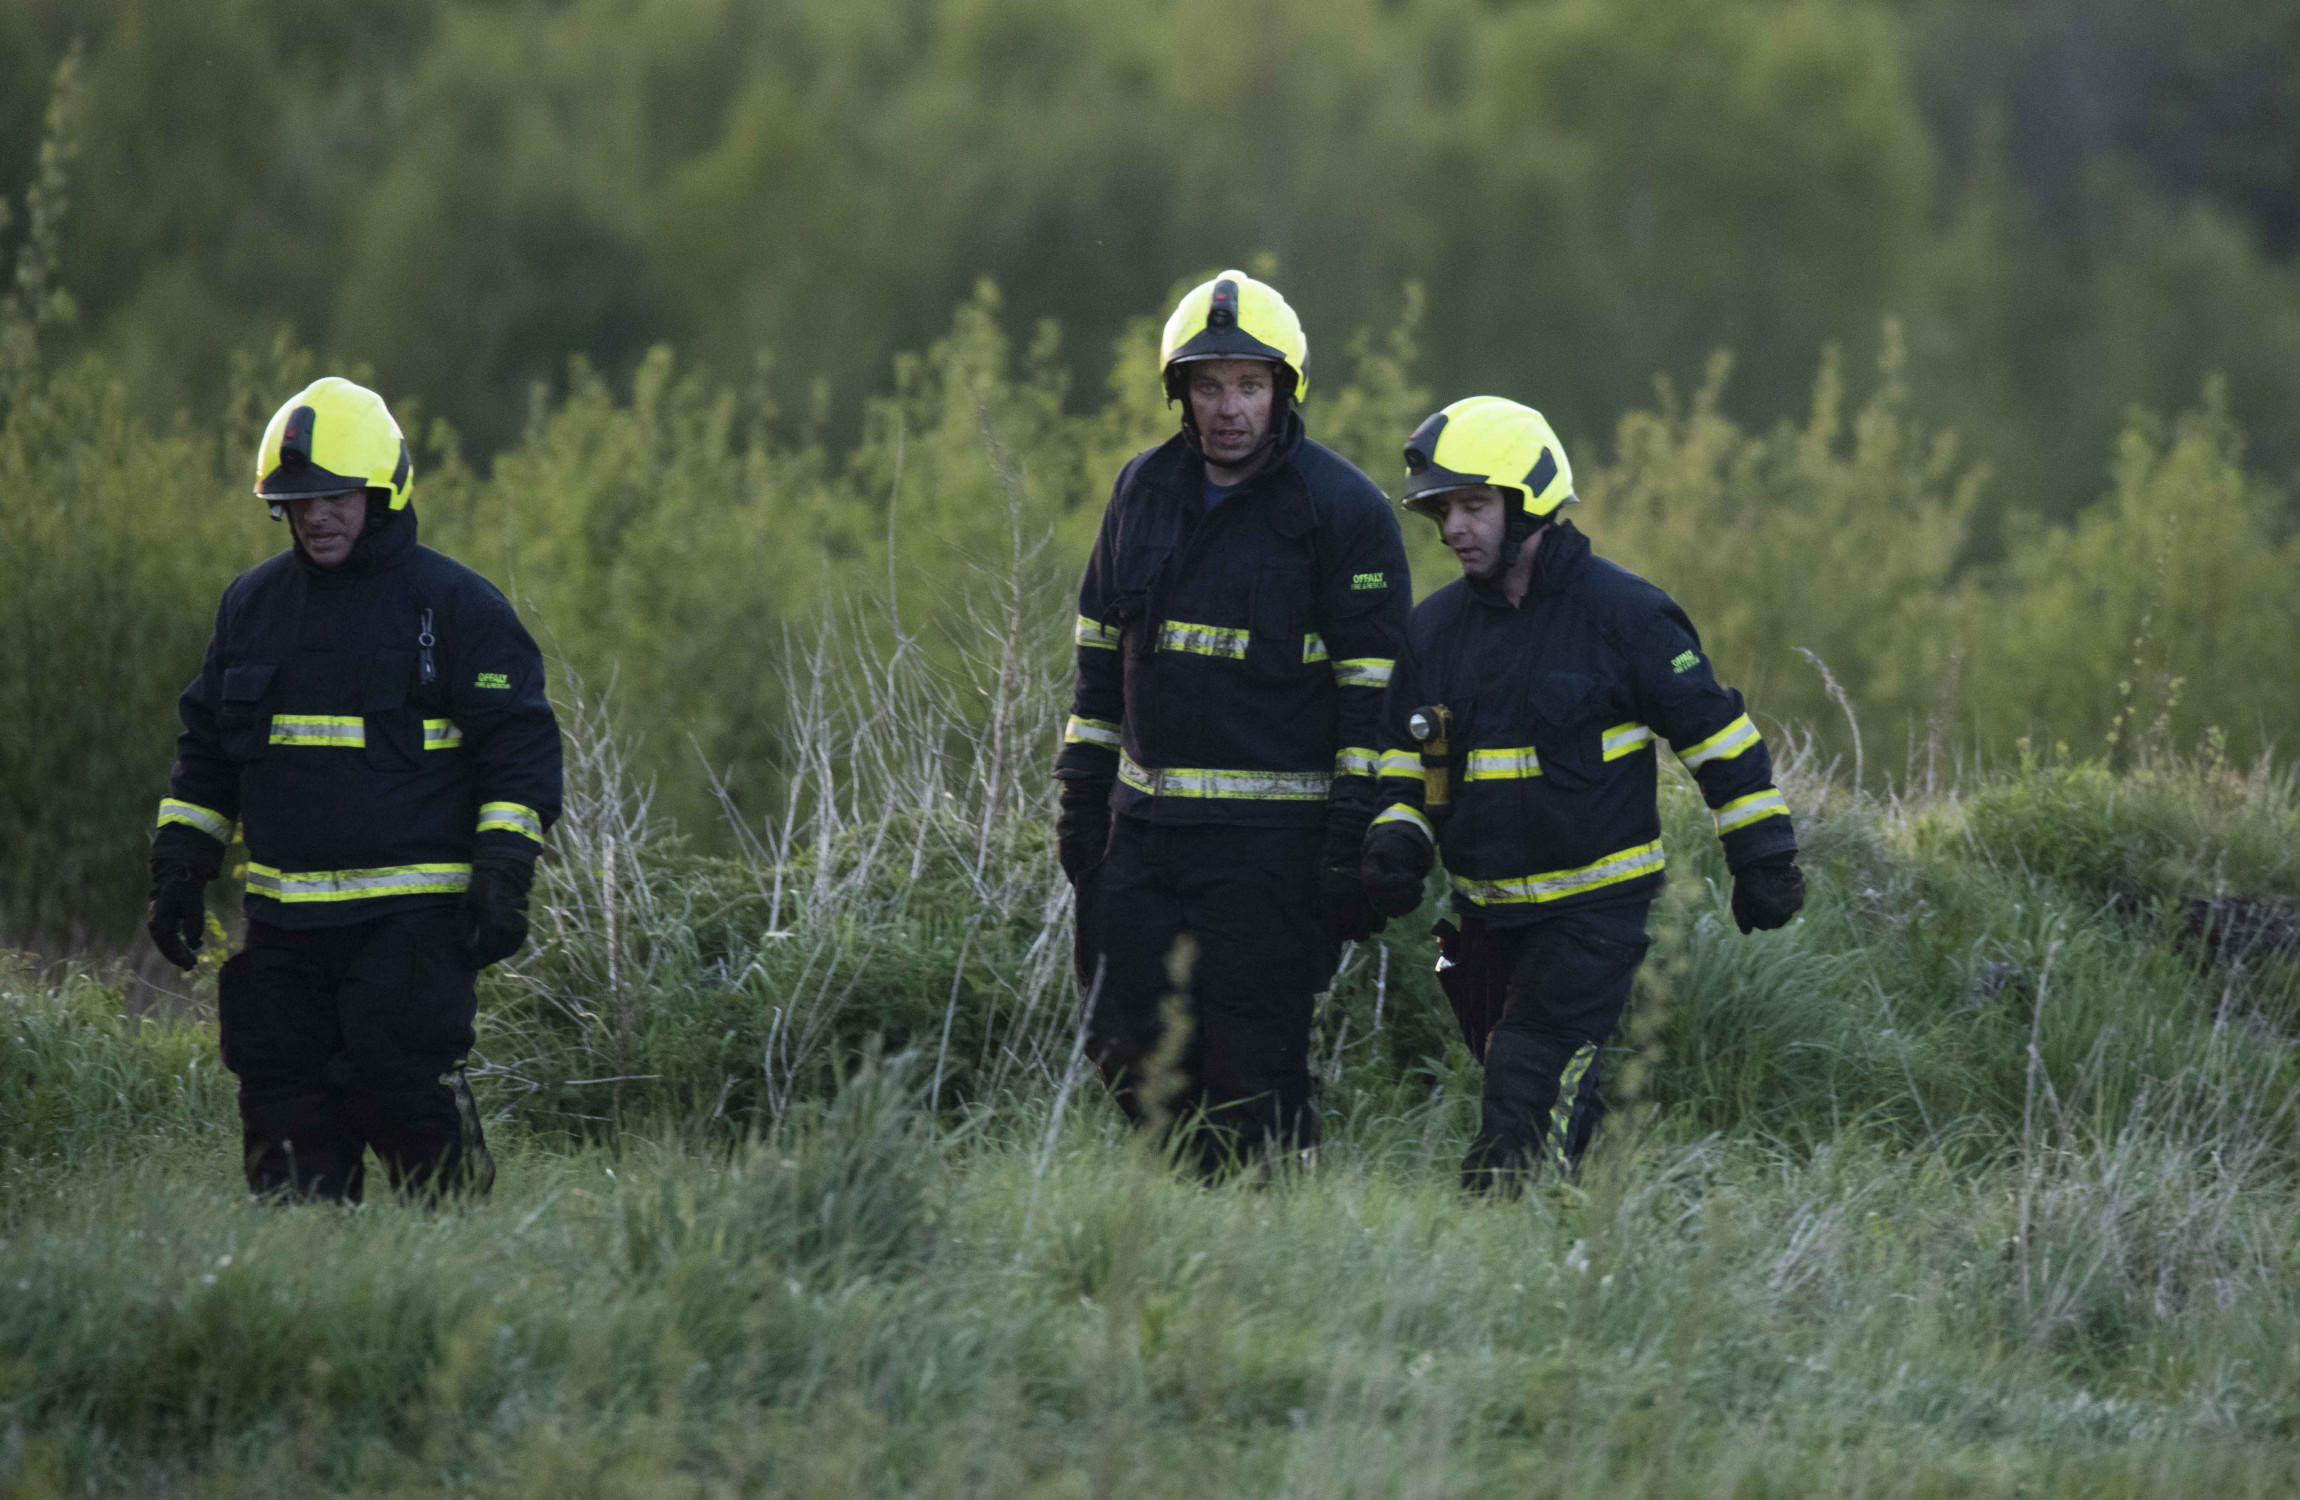 Offaly plane crash: Eyewitness says aircraft came down 'vertically' into bog